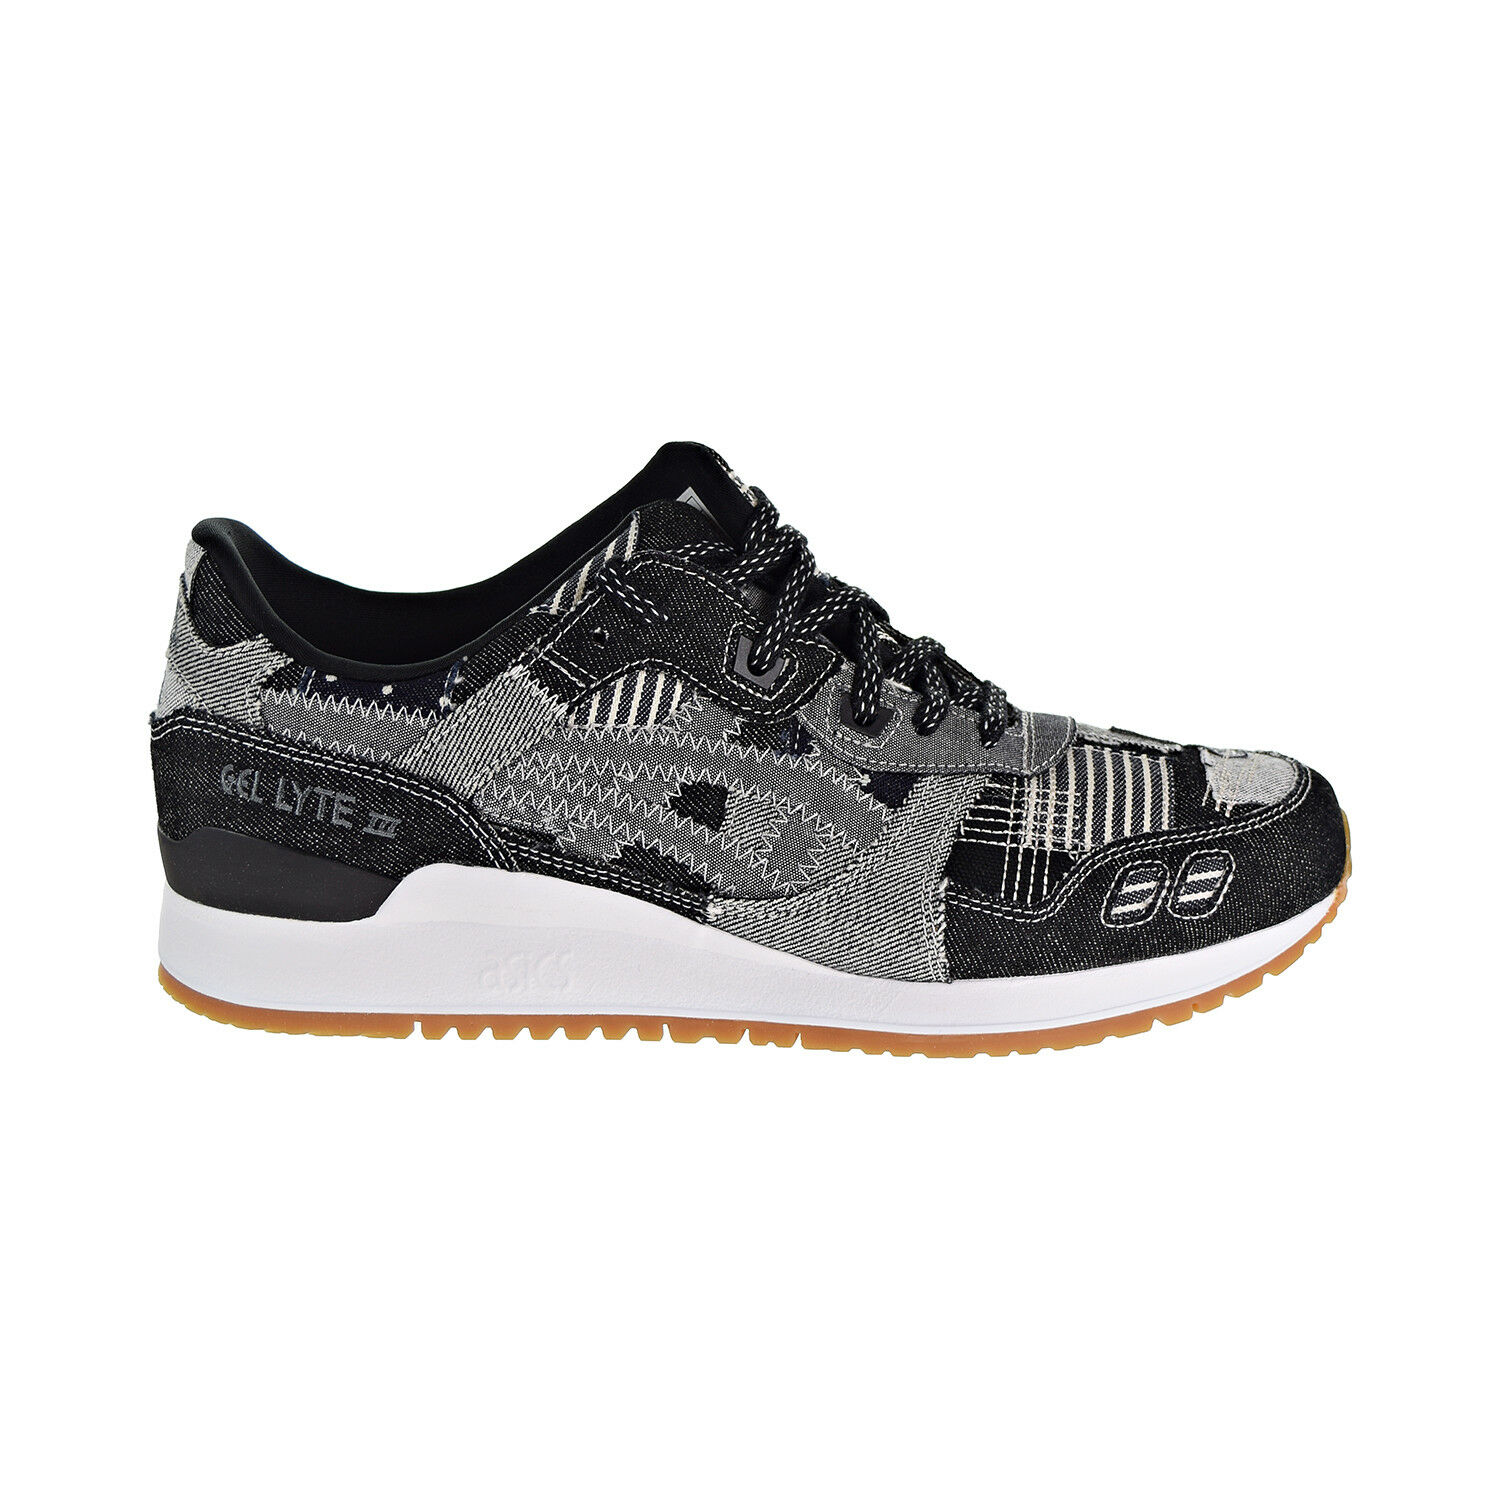 Asics Gel-Lyte 3 Uomo Shoes Peacoat/Aluminium hn7t0-5896